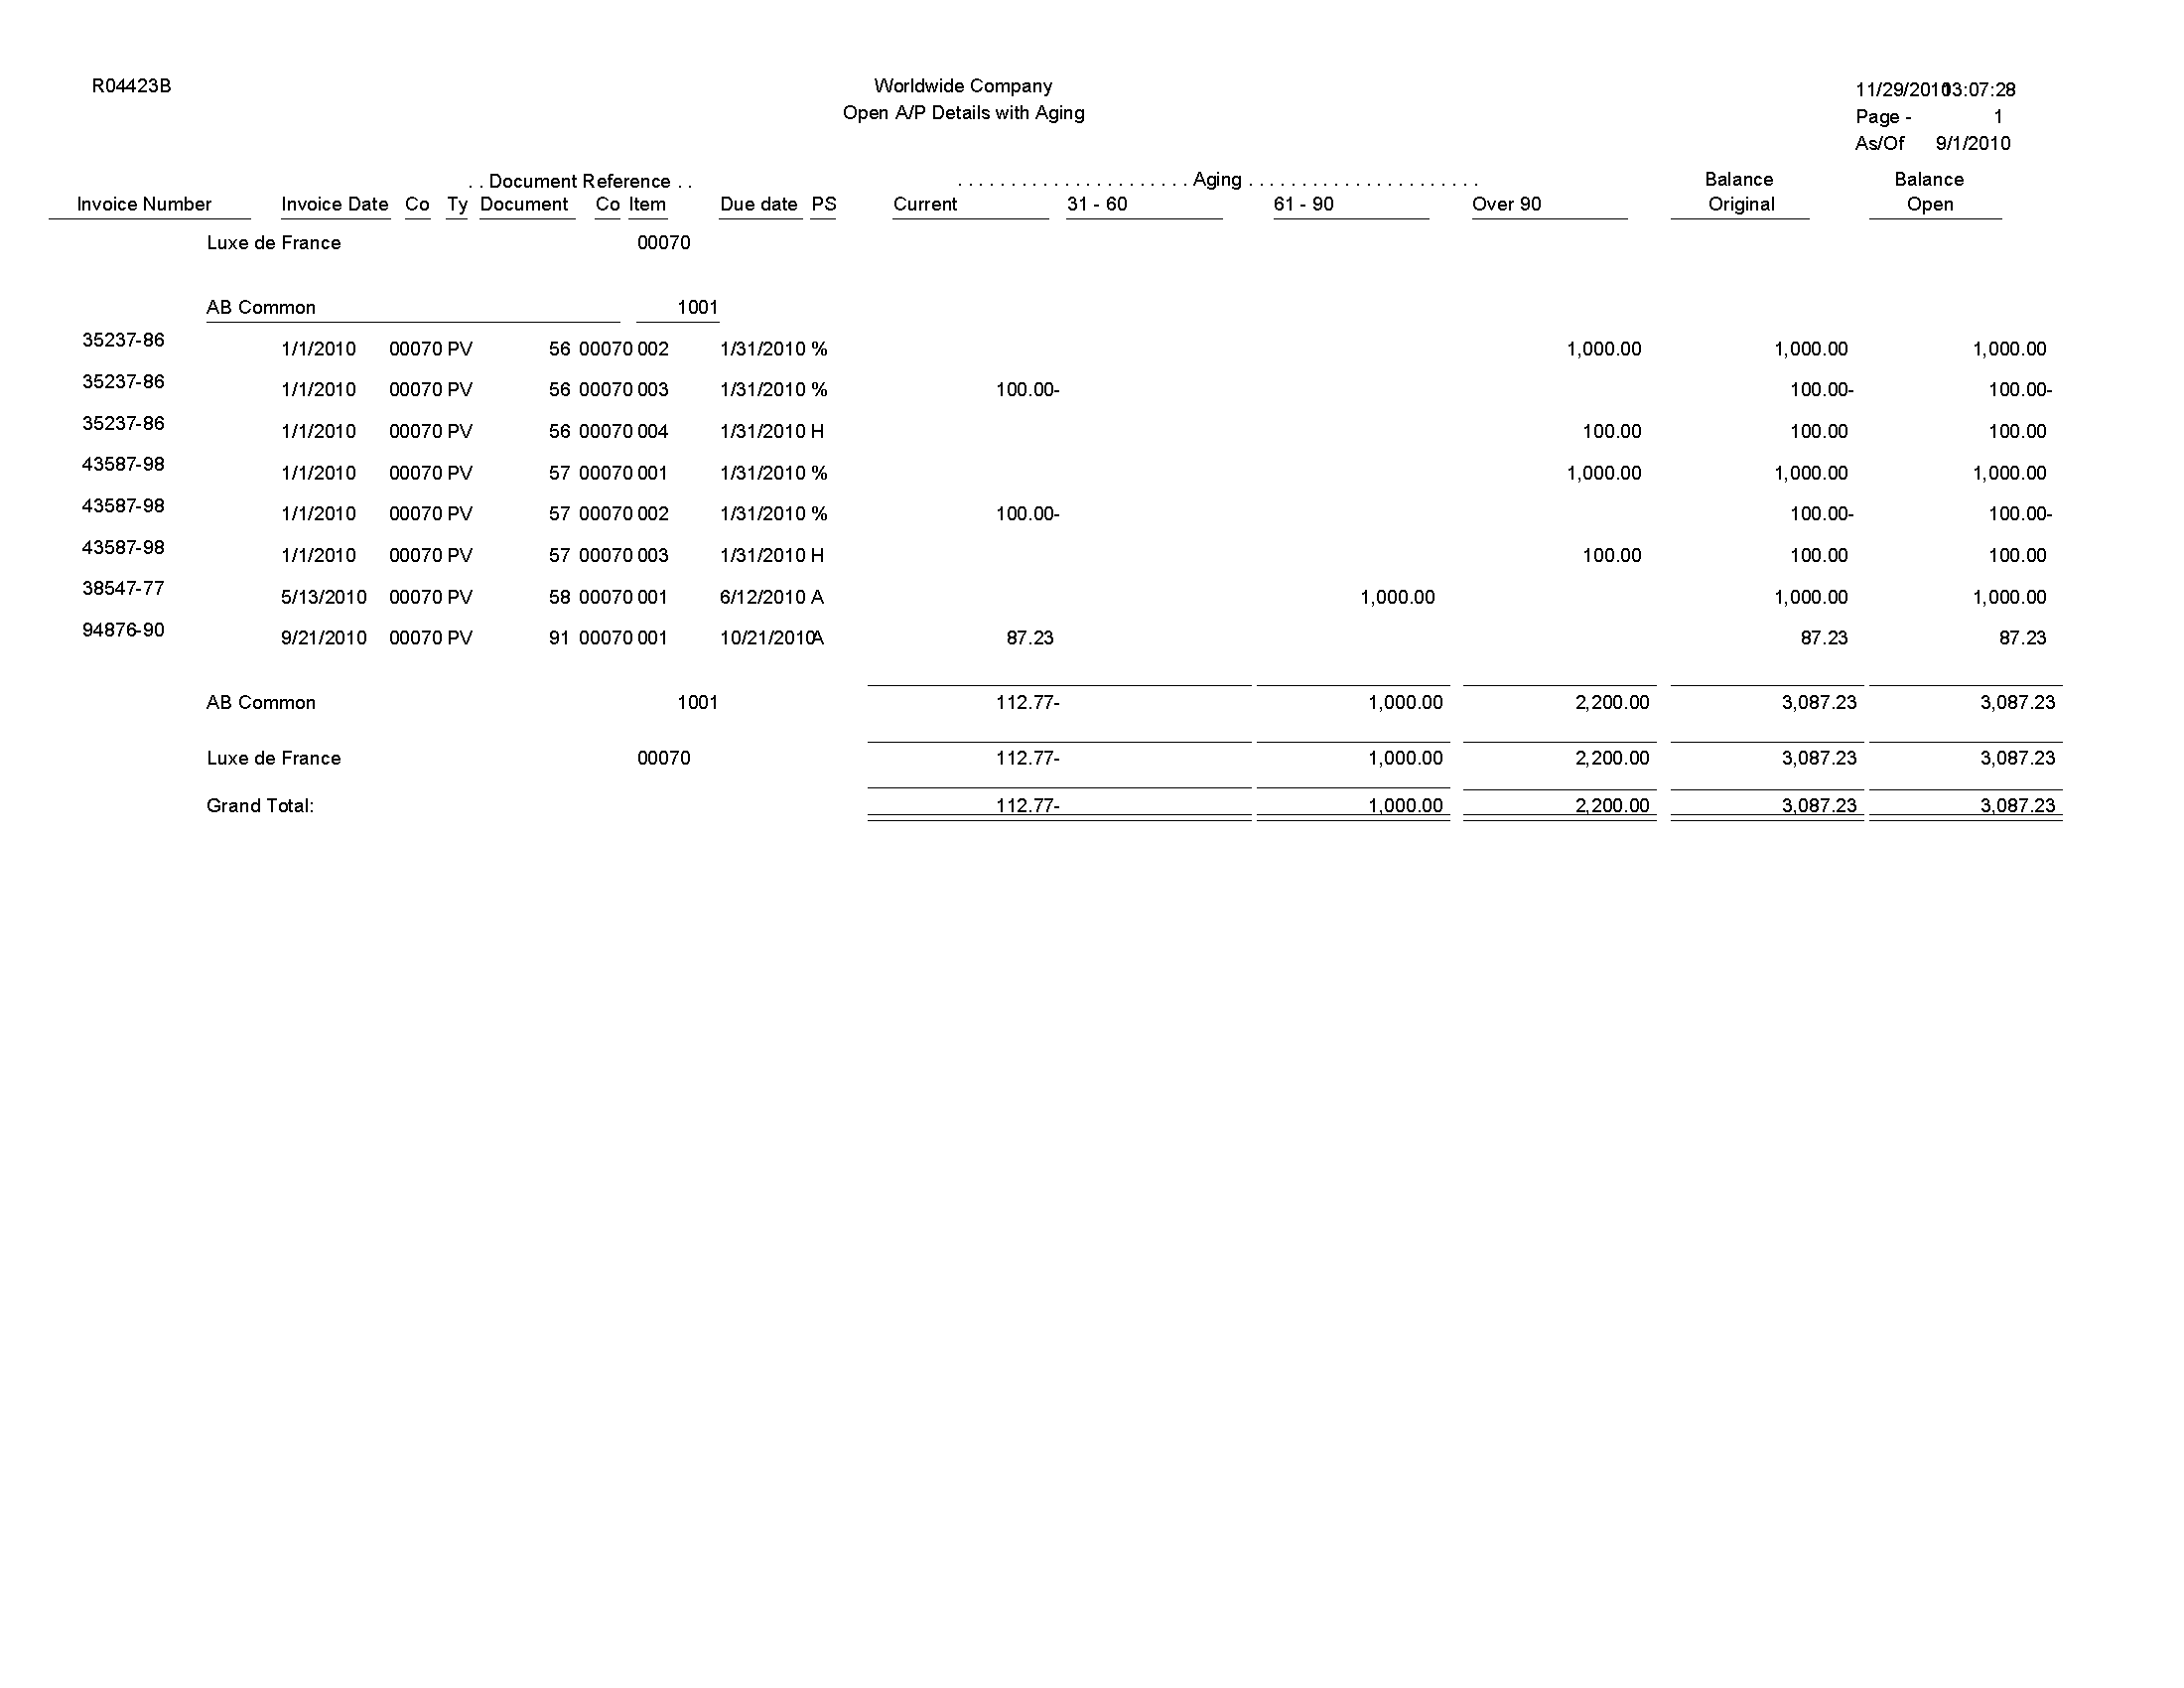 Business Valuation Report Template and Jd Edwards Enterpriseone Accounts Payable Reports